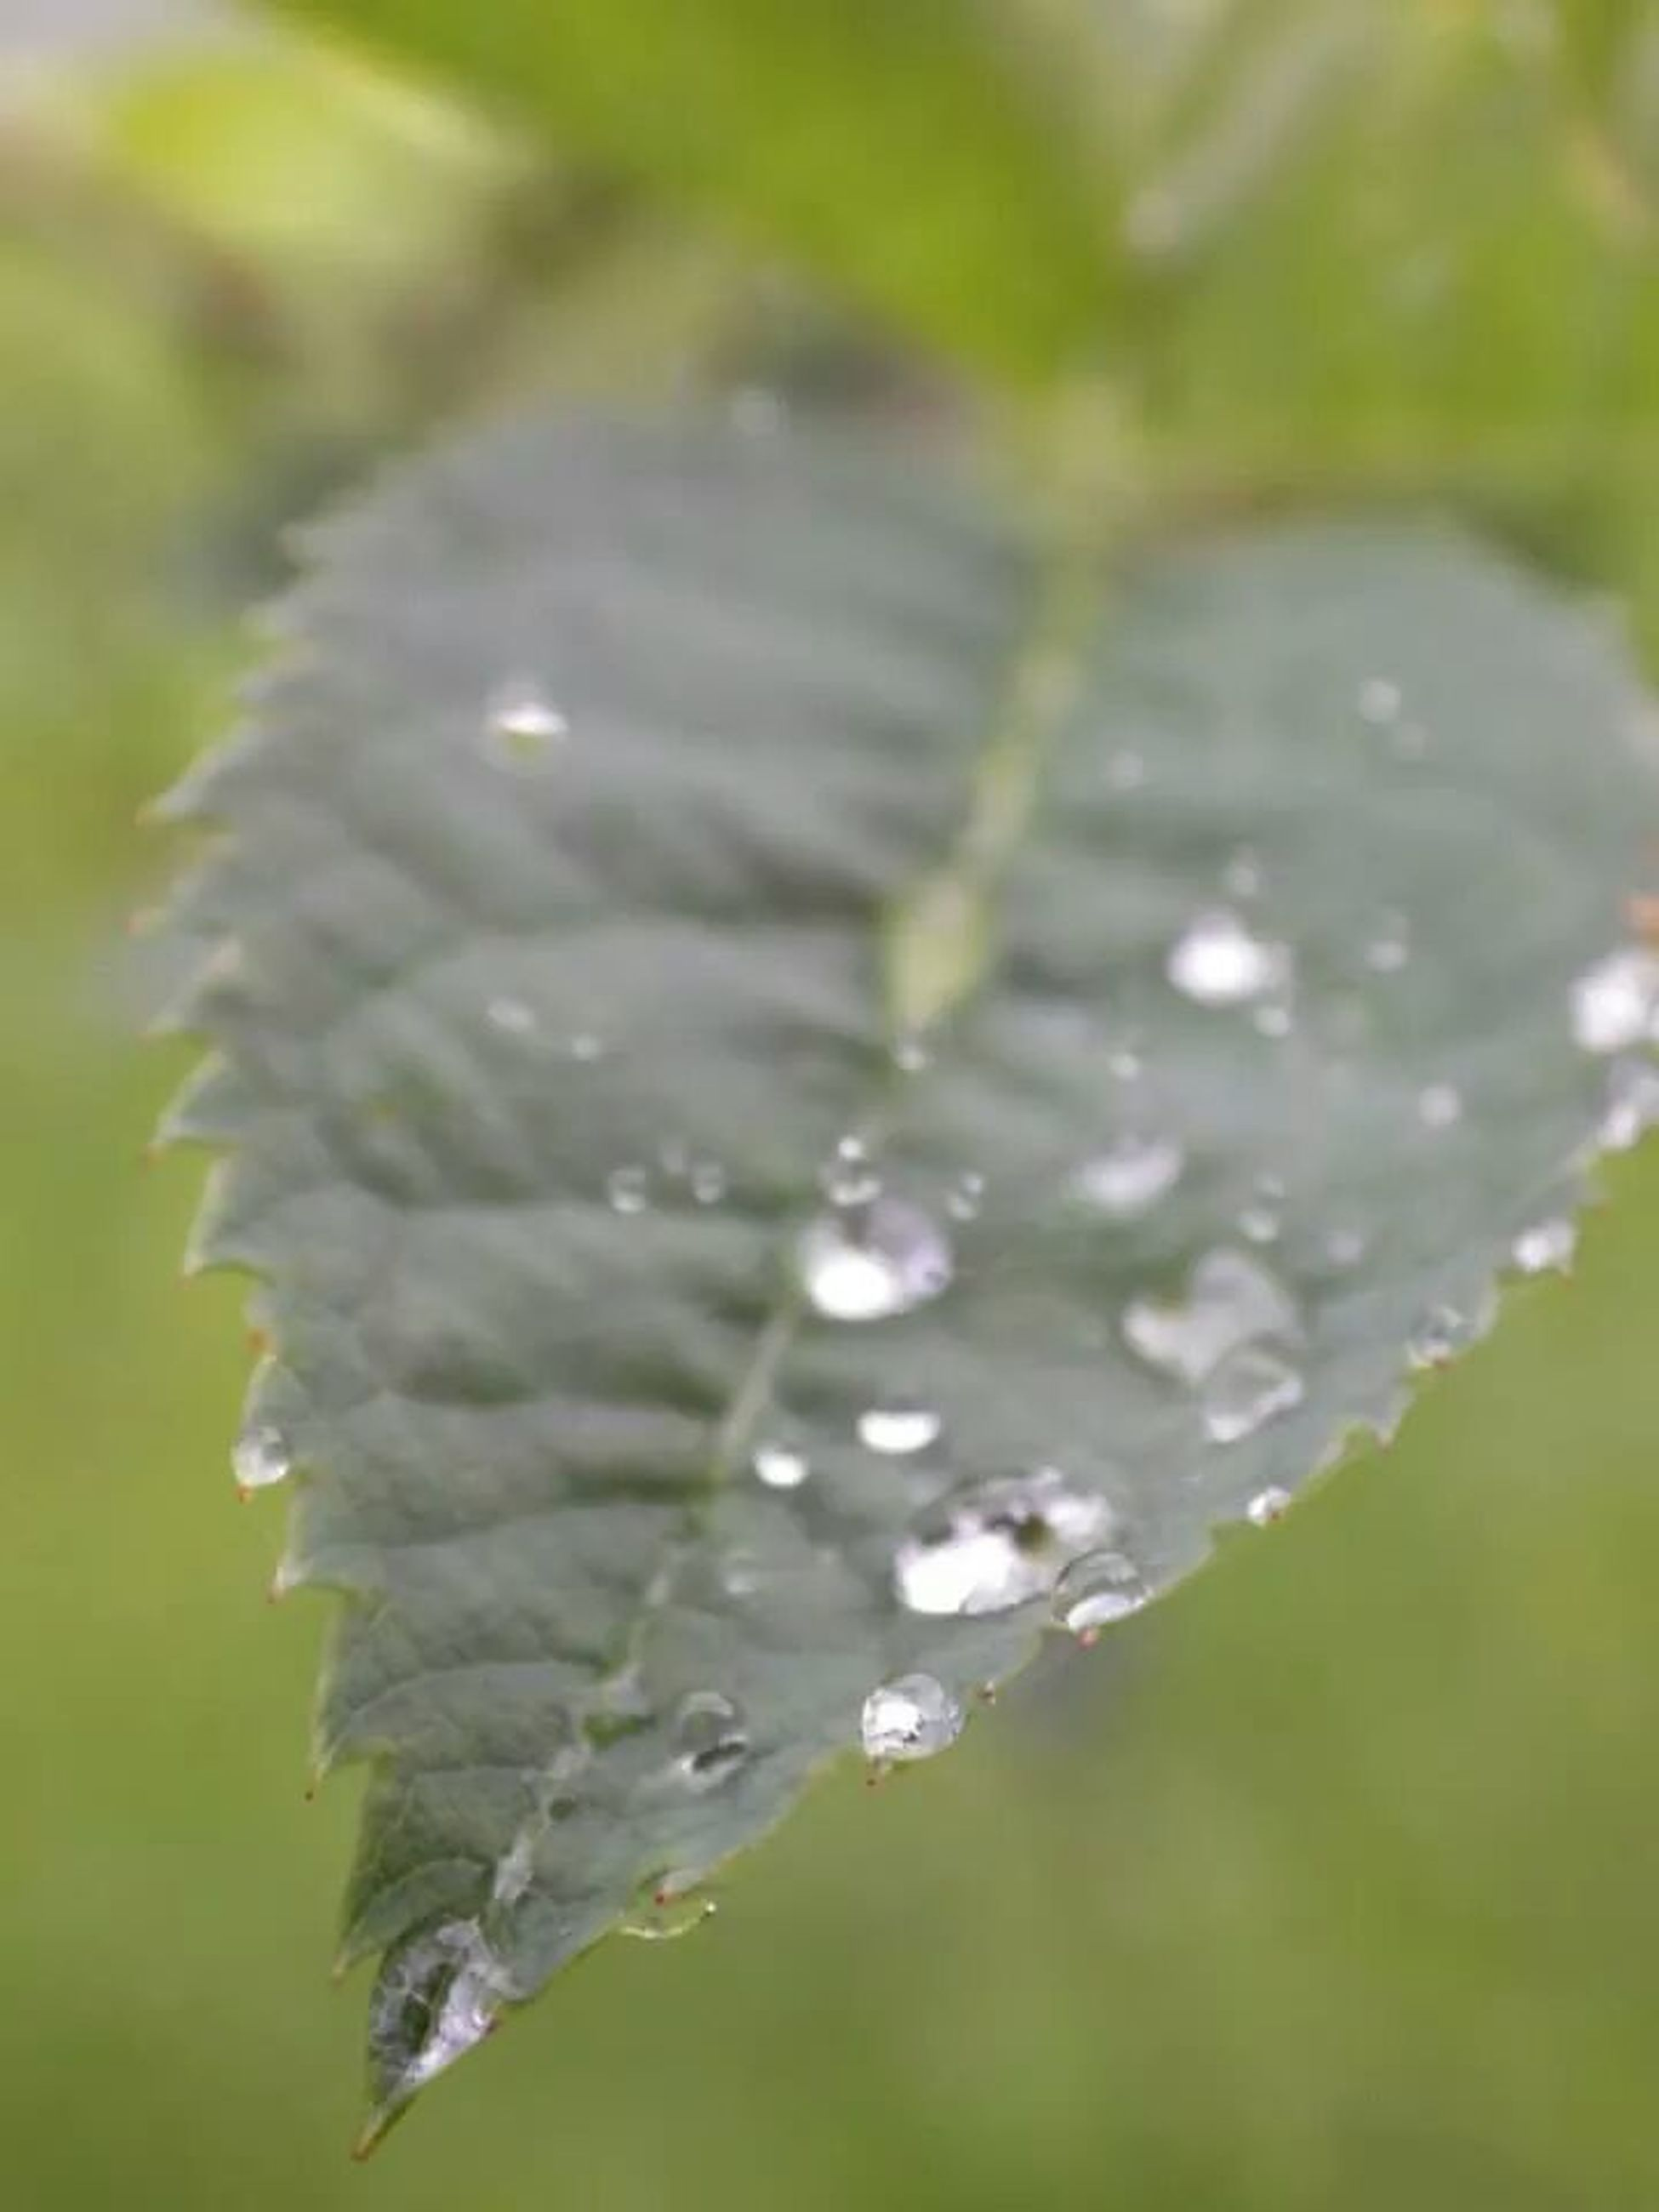 drop, water, close-up, focus on foreground, wet, nature, fragility, growth, freshness, beauty in nature, plant, selective focus, season, weather, day, green color, leaf, dew, outdoors, winter